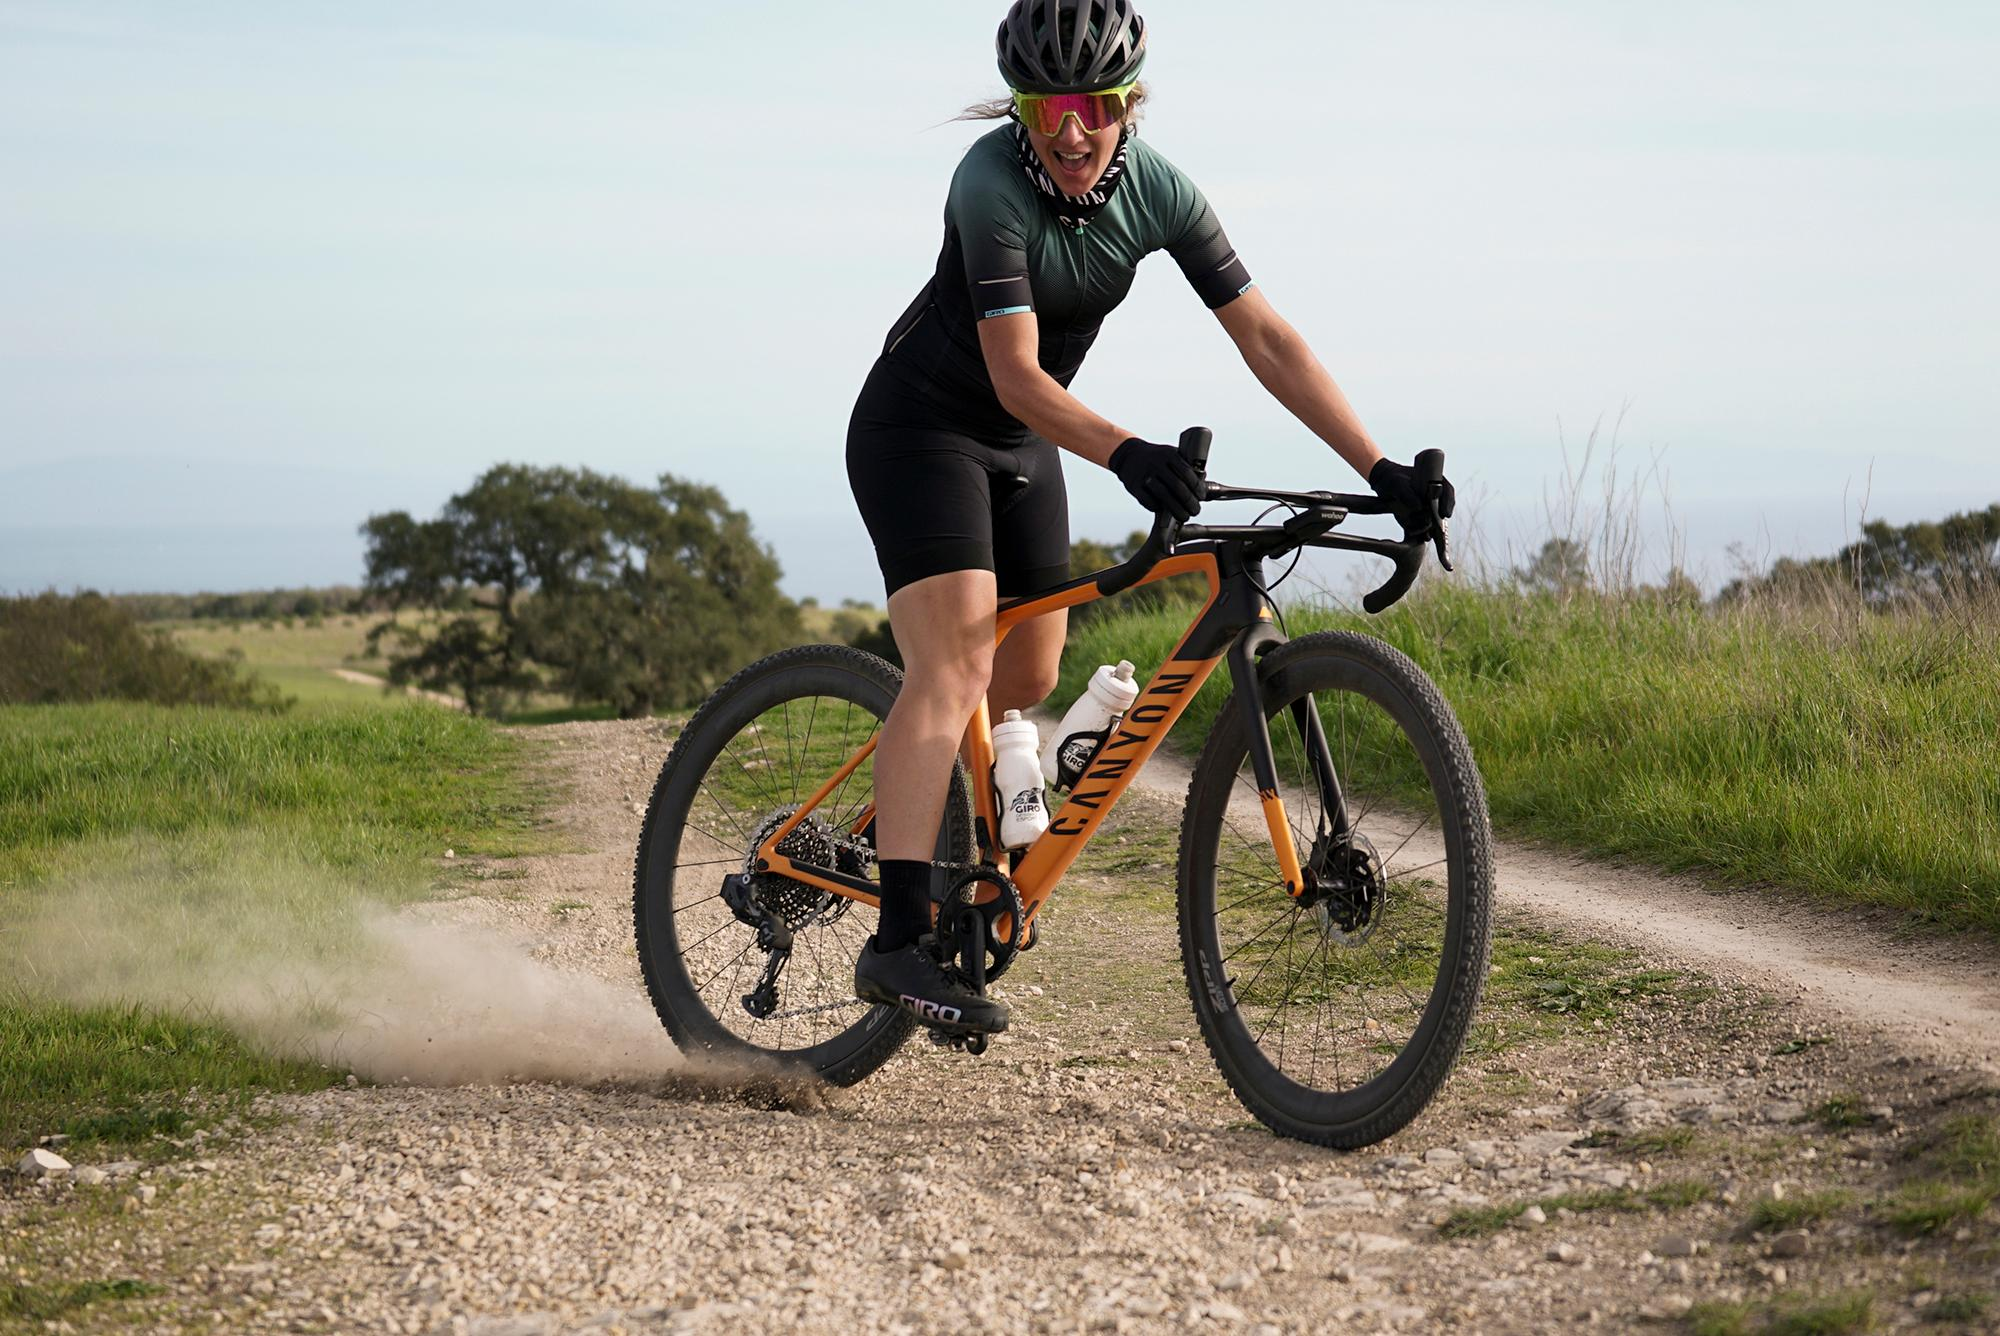 Kathy Pruitt is bringing downhill skills and a big ol' smile to gravel.